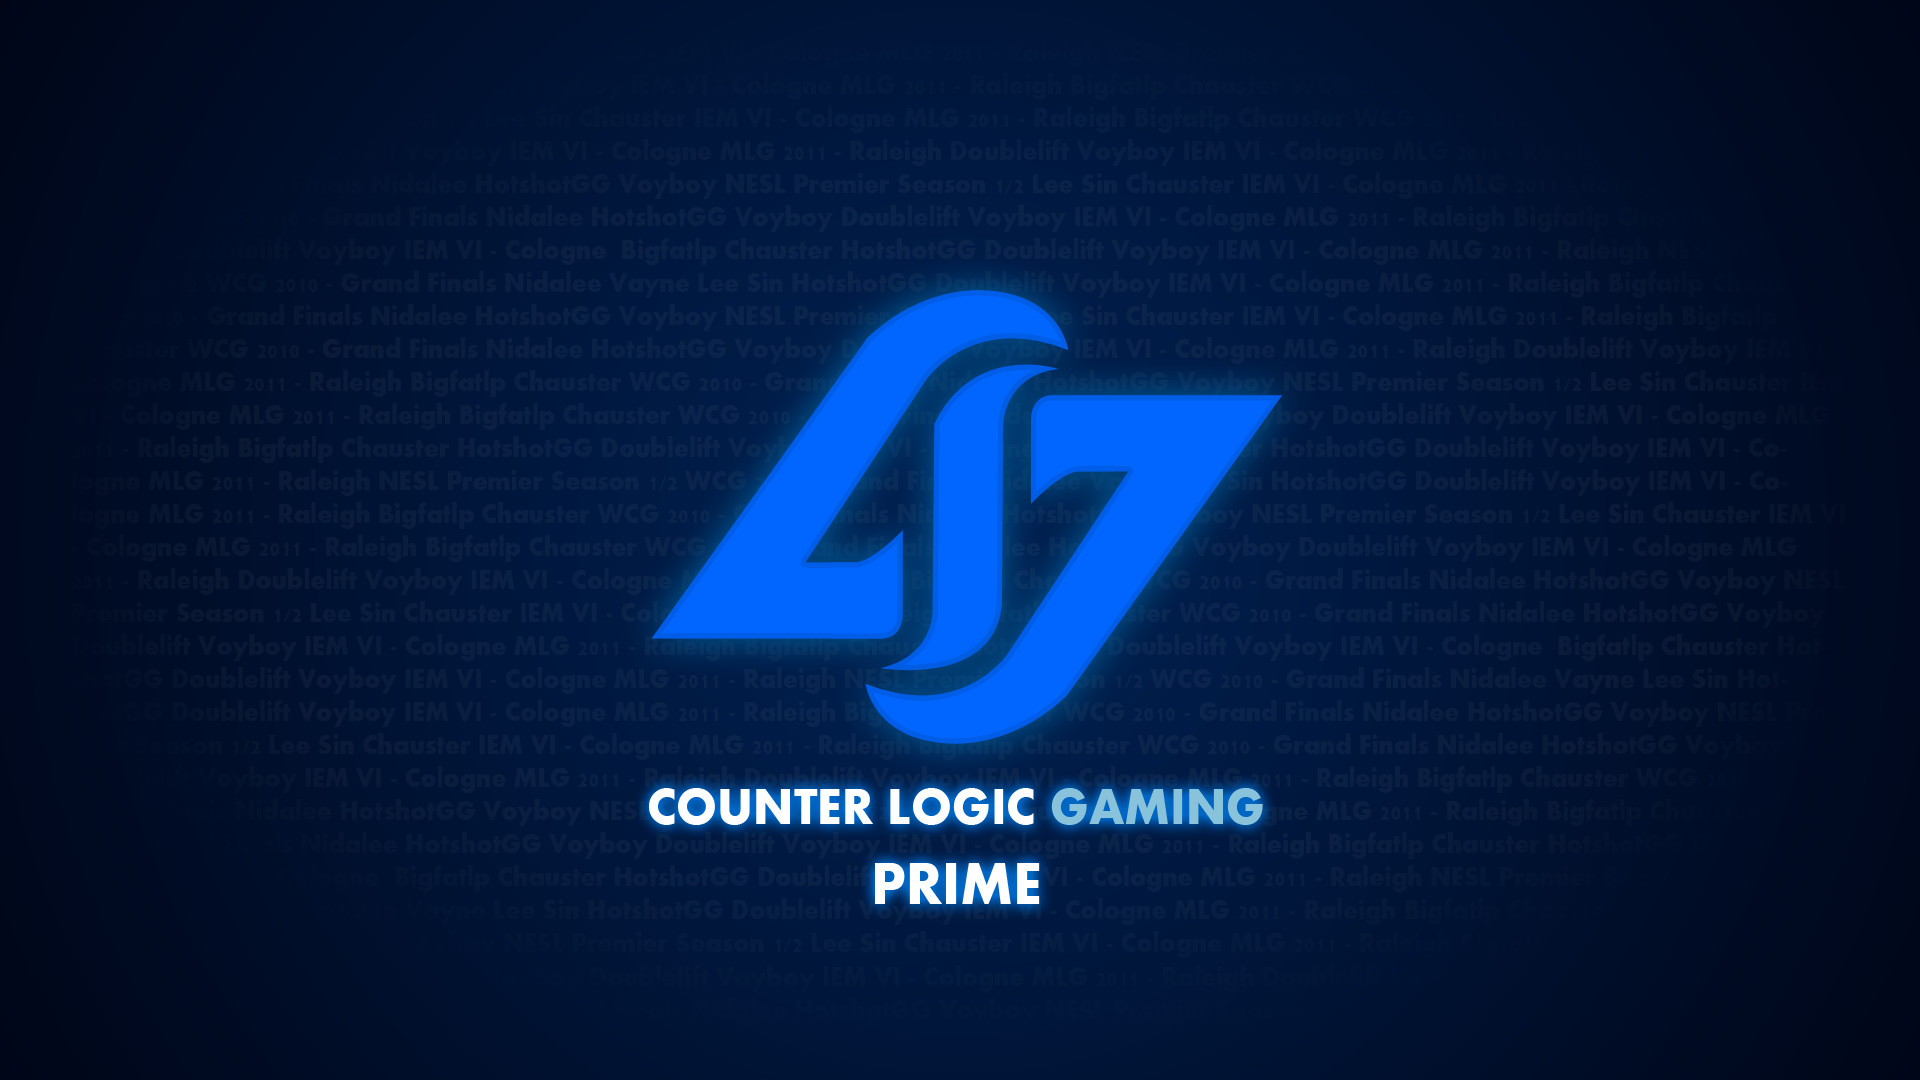 Counter Logic Gaming Prime Wallpaper by ggeorgiev92 Counter Logic Gaming  Prime Wallpaper by ggeorgiev92